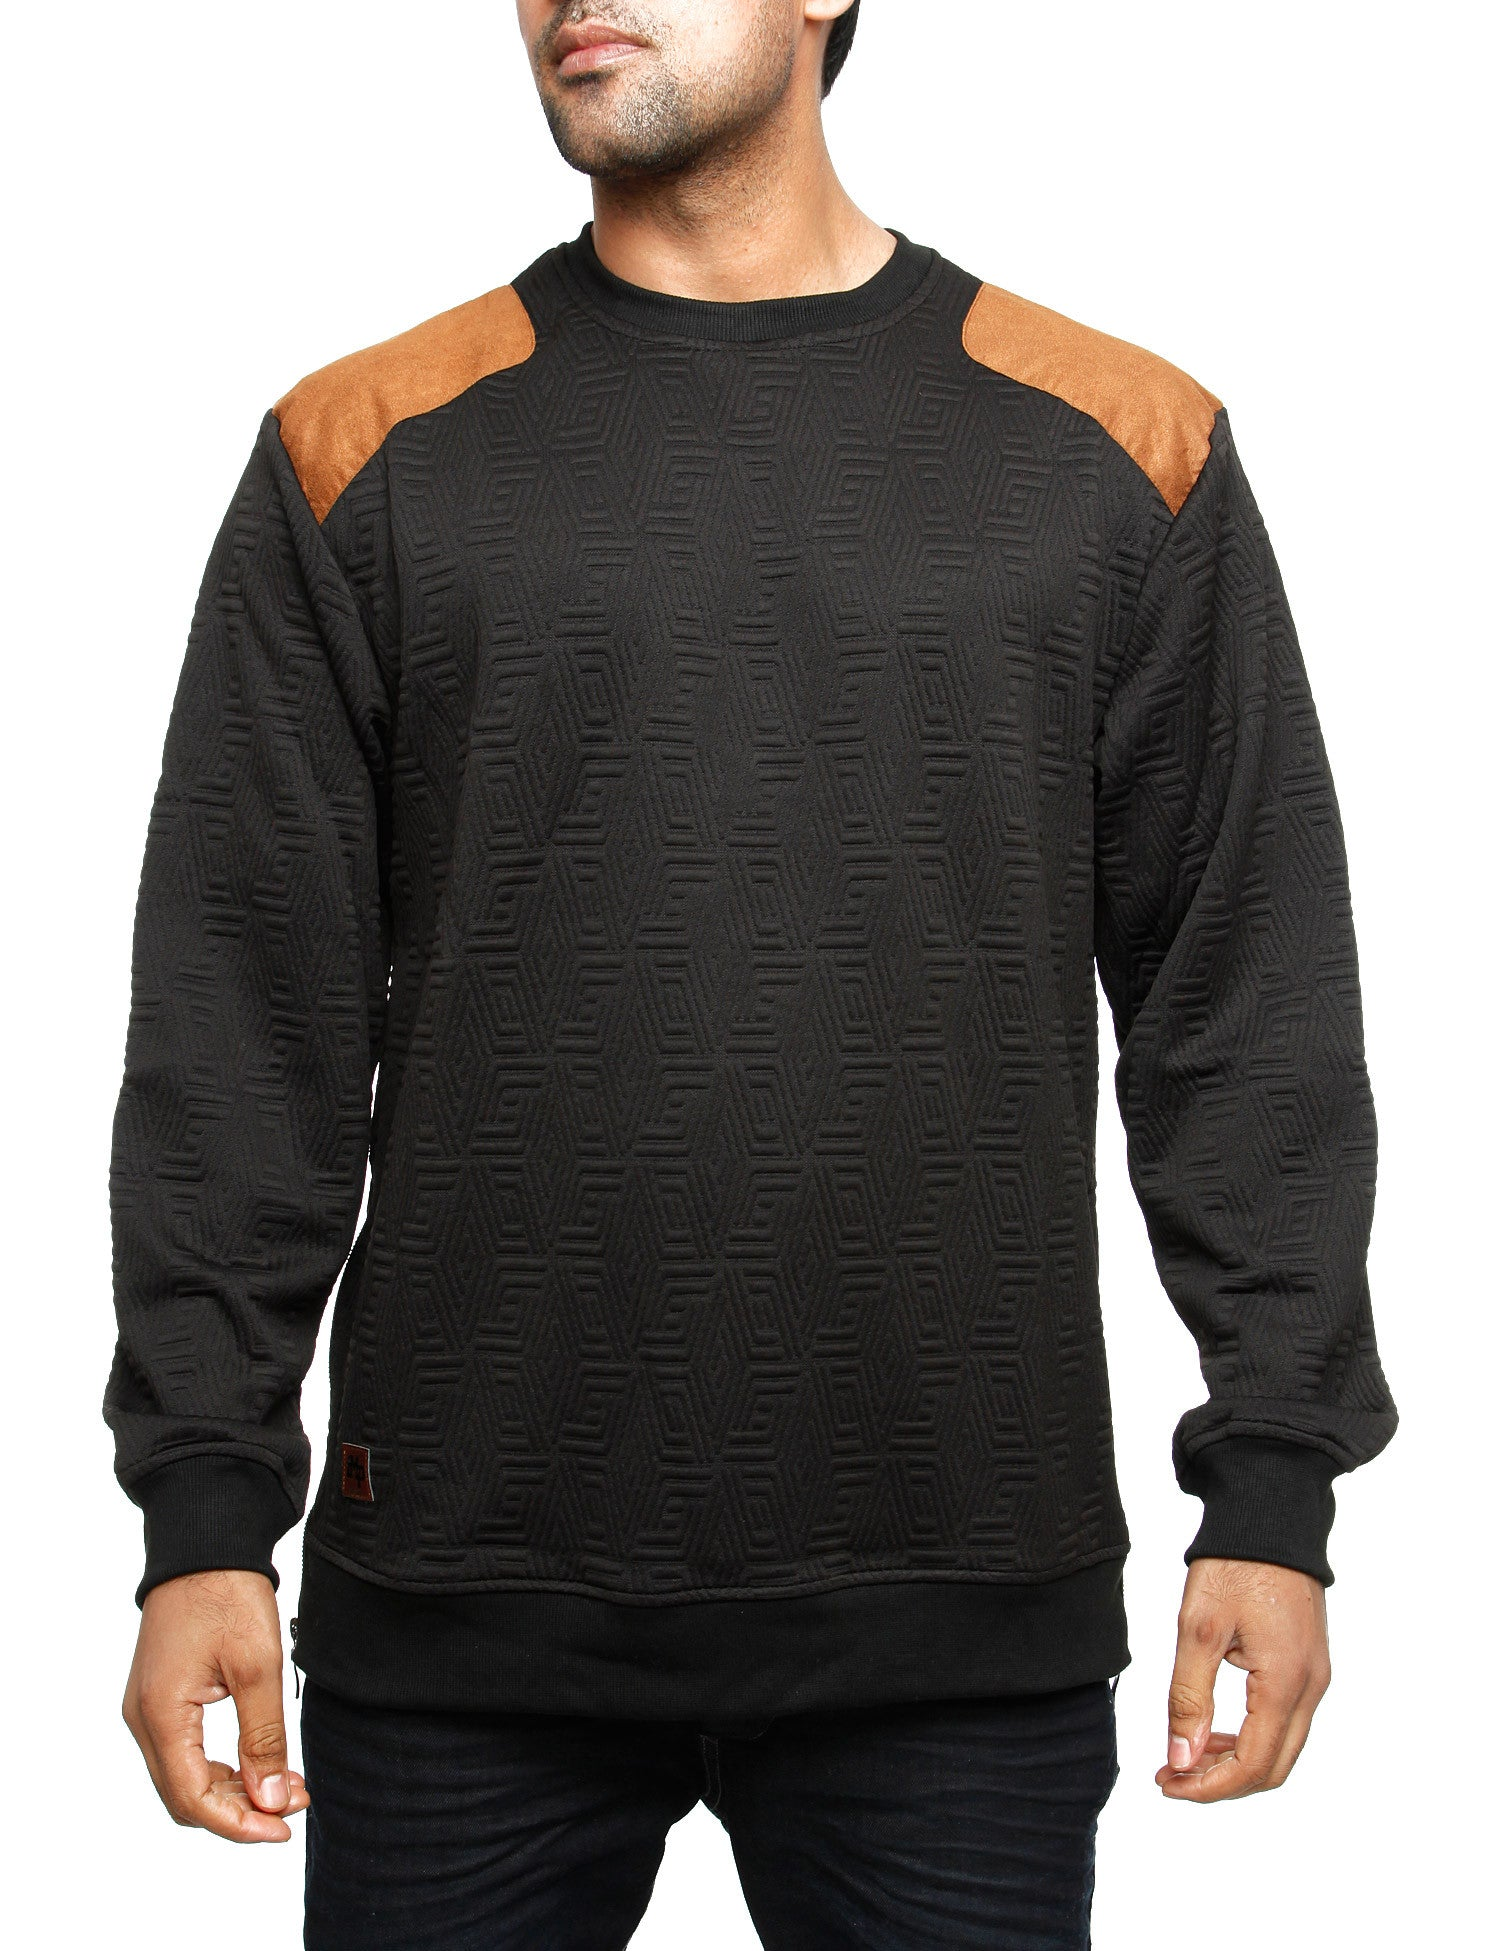 Imperious ?Quilted? Sweatshirt CS542 Black